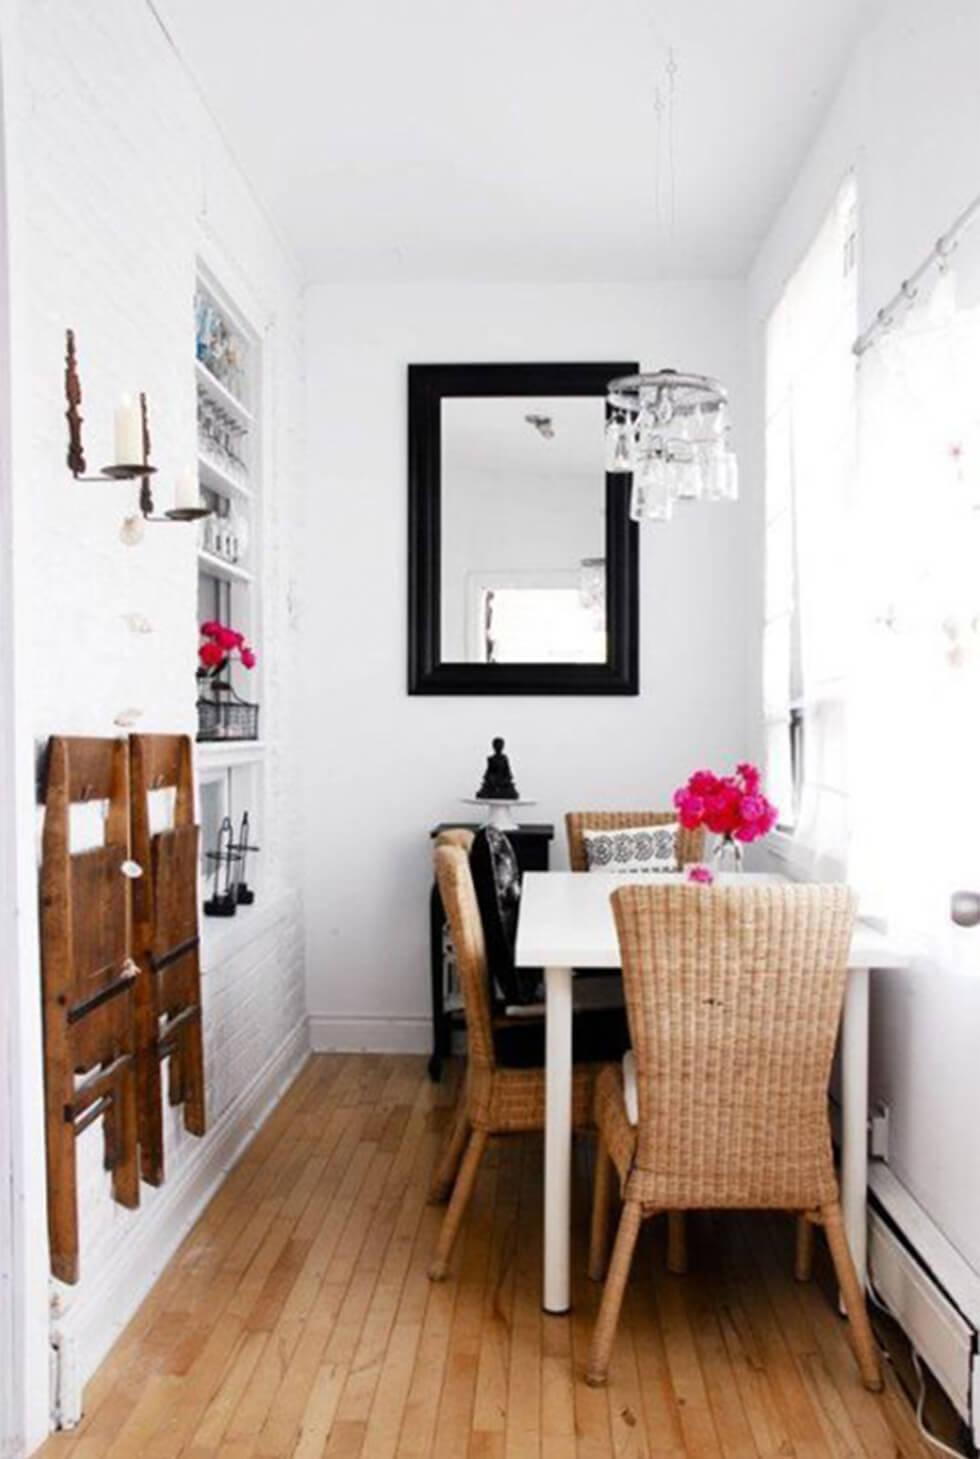 Bright and airy small dining room with white table against a wall, wicker chairs and a mirror